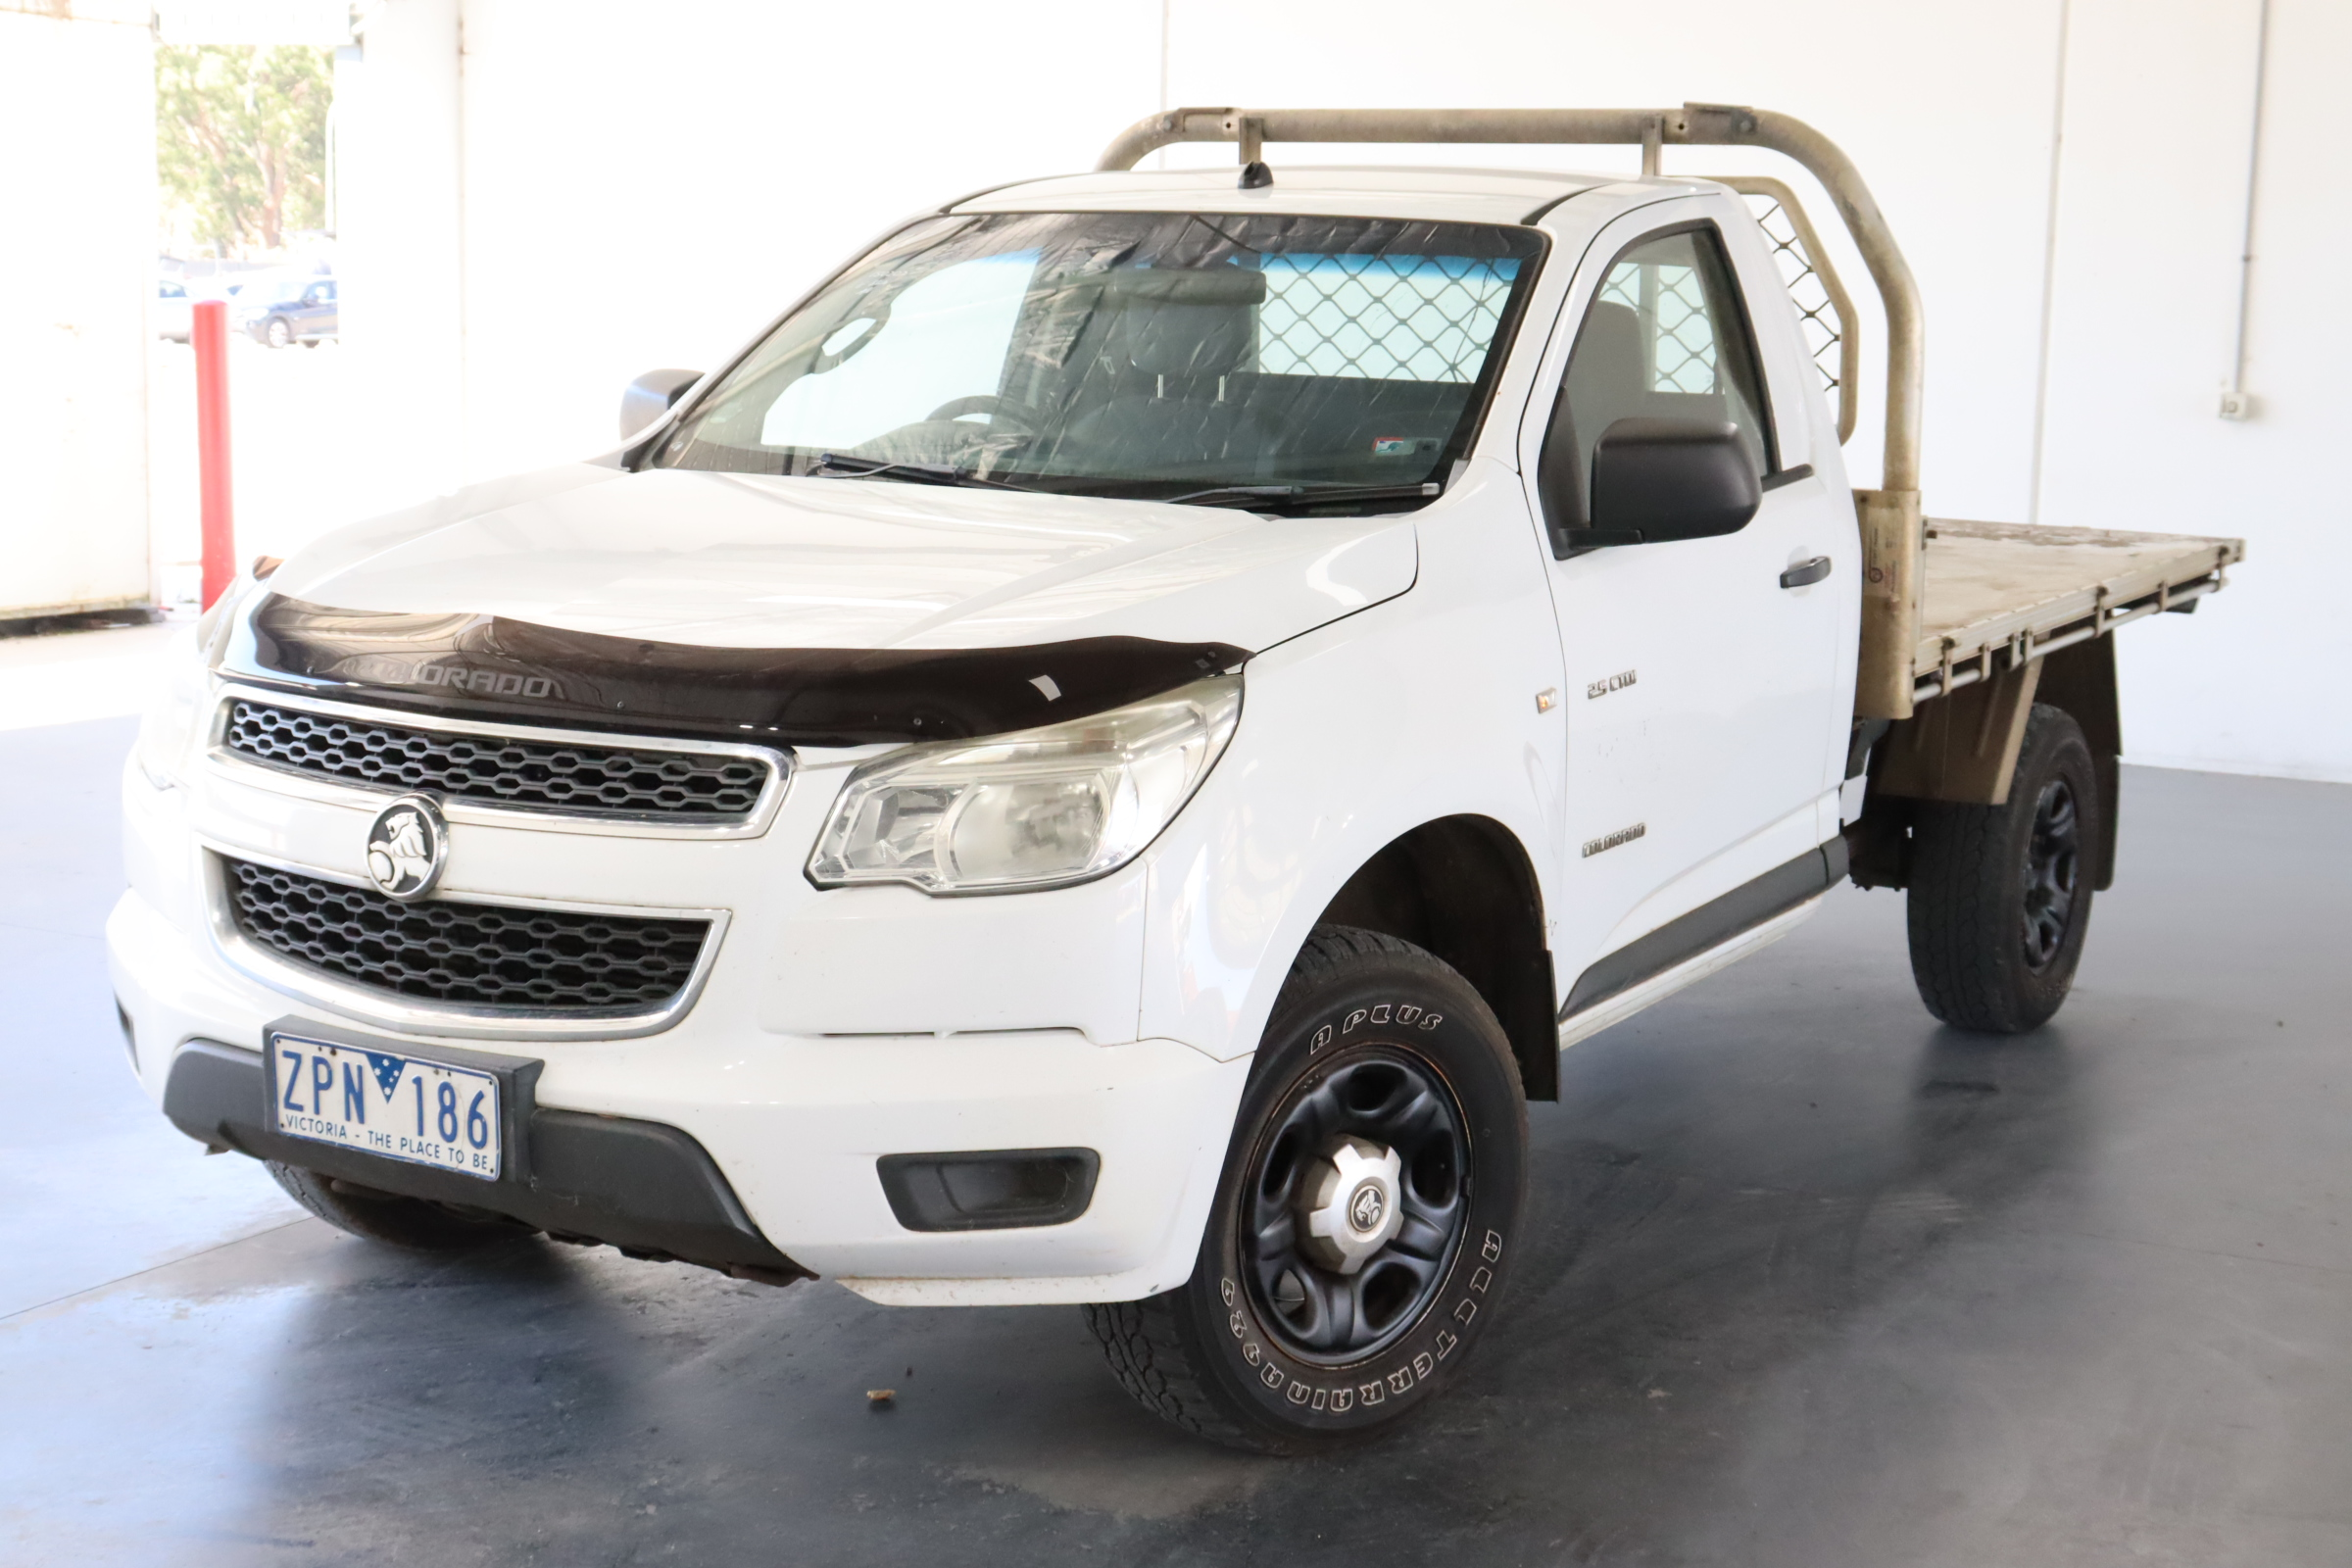 2012 Holden Colorado 4X2 DX RG Turbo Diesel Manual Cab Chassis